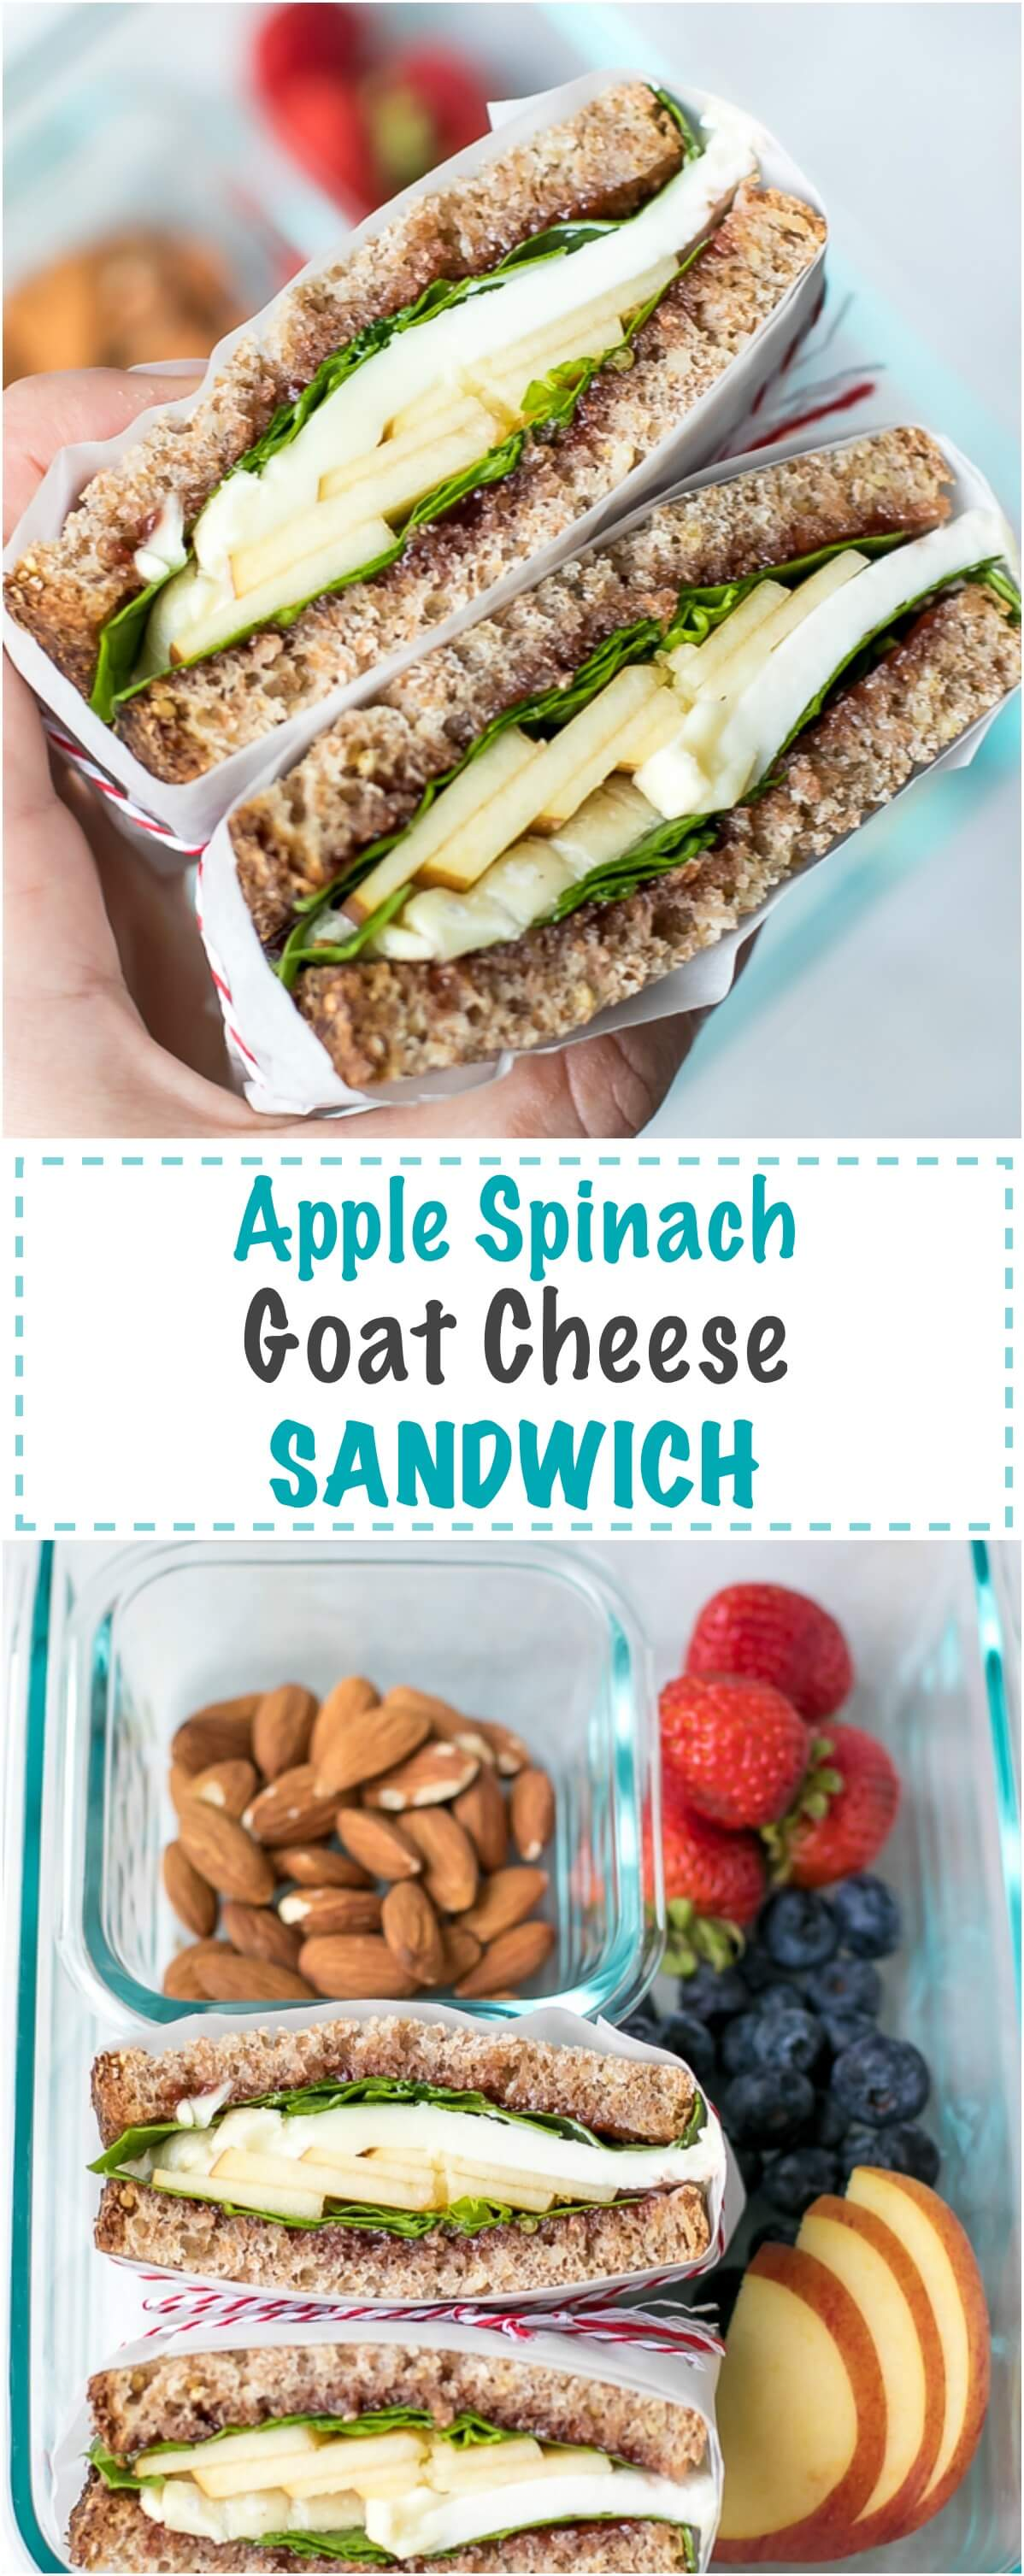 Apple Spinach Goat Cheese Sandwich - Packed Lunch - the perfect, simple to make, healthy and delicious sandwich. Vegetarian, packed with sweet apples, spinach, strawberry jam and creamy Chevre D'Argental goat cheese on a whole grain bread. Ready in less than 5 minutes, this sandwich is great to pack and take to work or school.